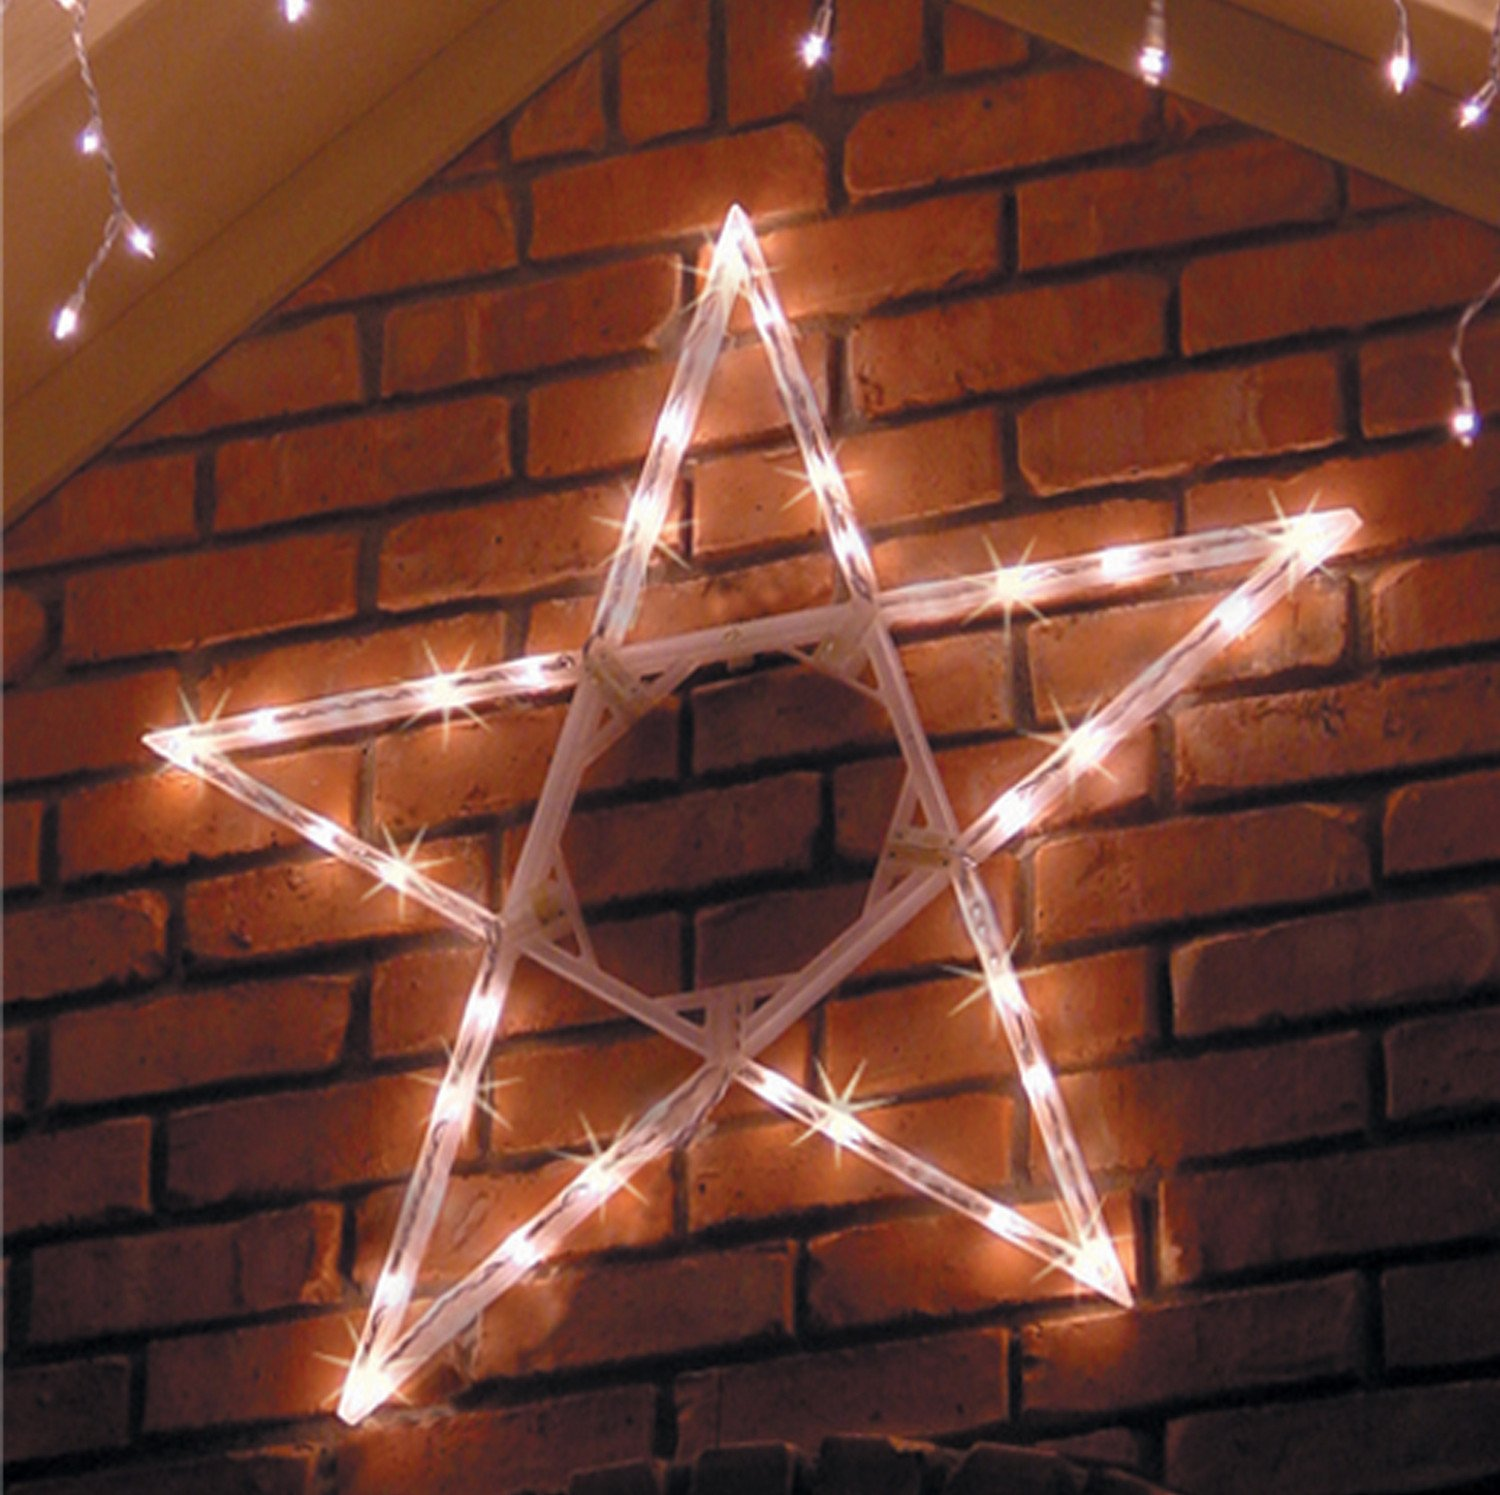 Amazon 4 led folding star decoration 70 cool white lights amazon 4 led folding star decoration 70 cool white lights string lights garden outdoor aloadofball Image collections